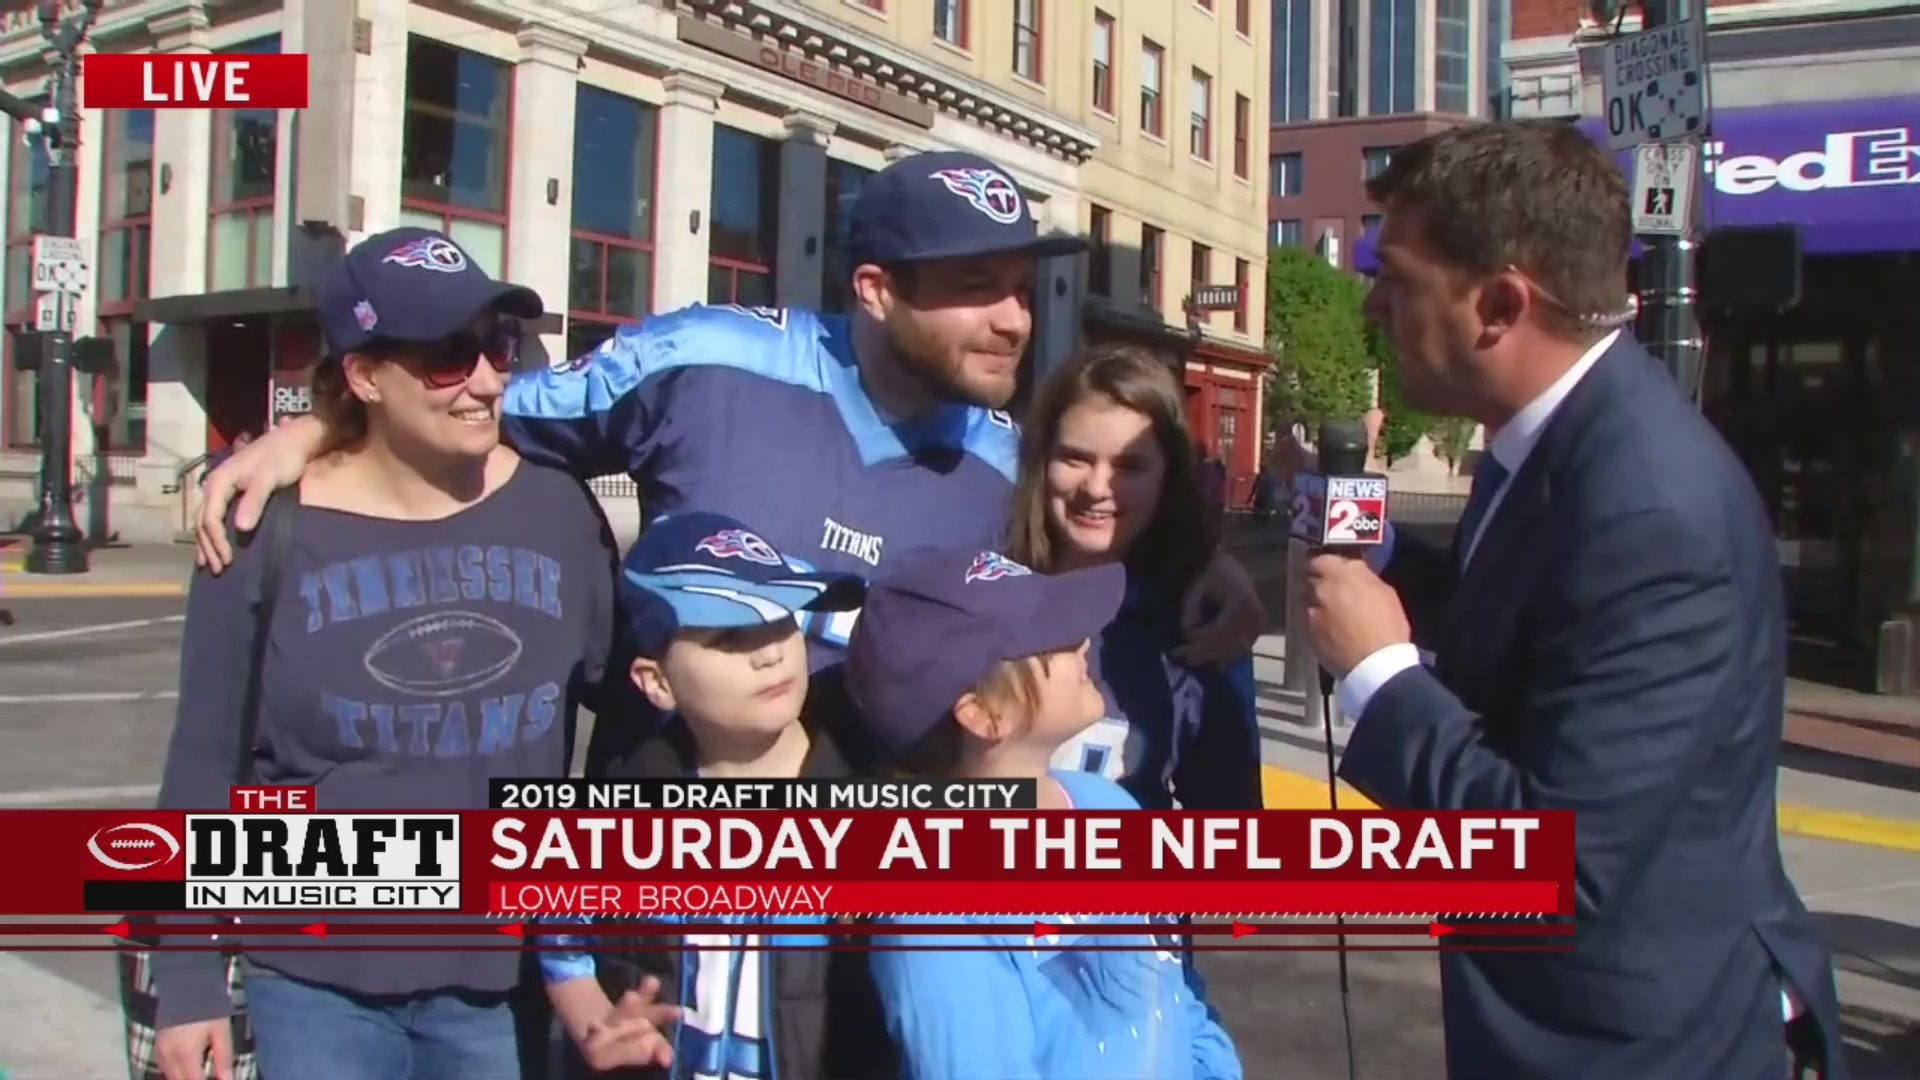 NFL Draft fans, marathon runners converge on Lower Broadway